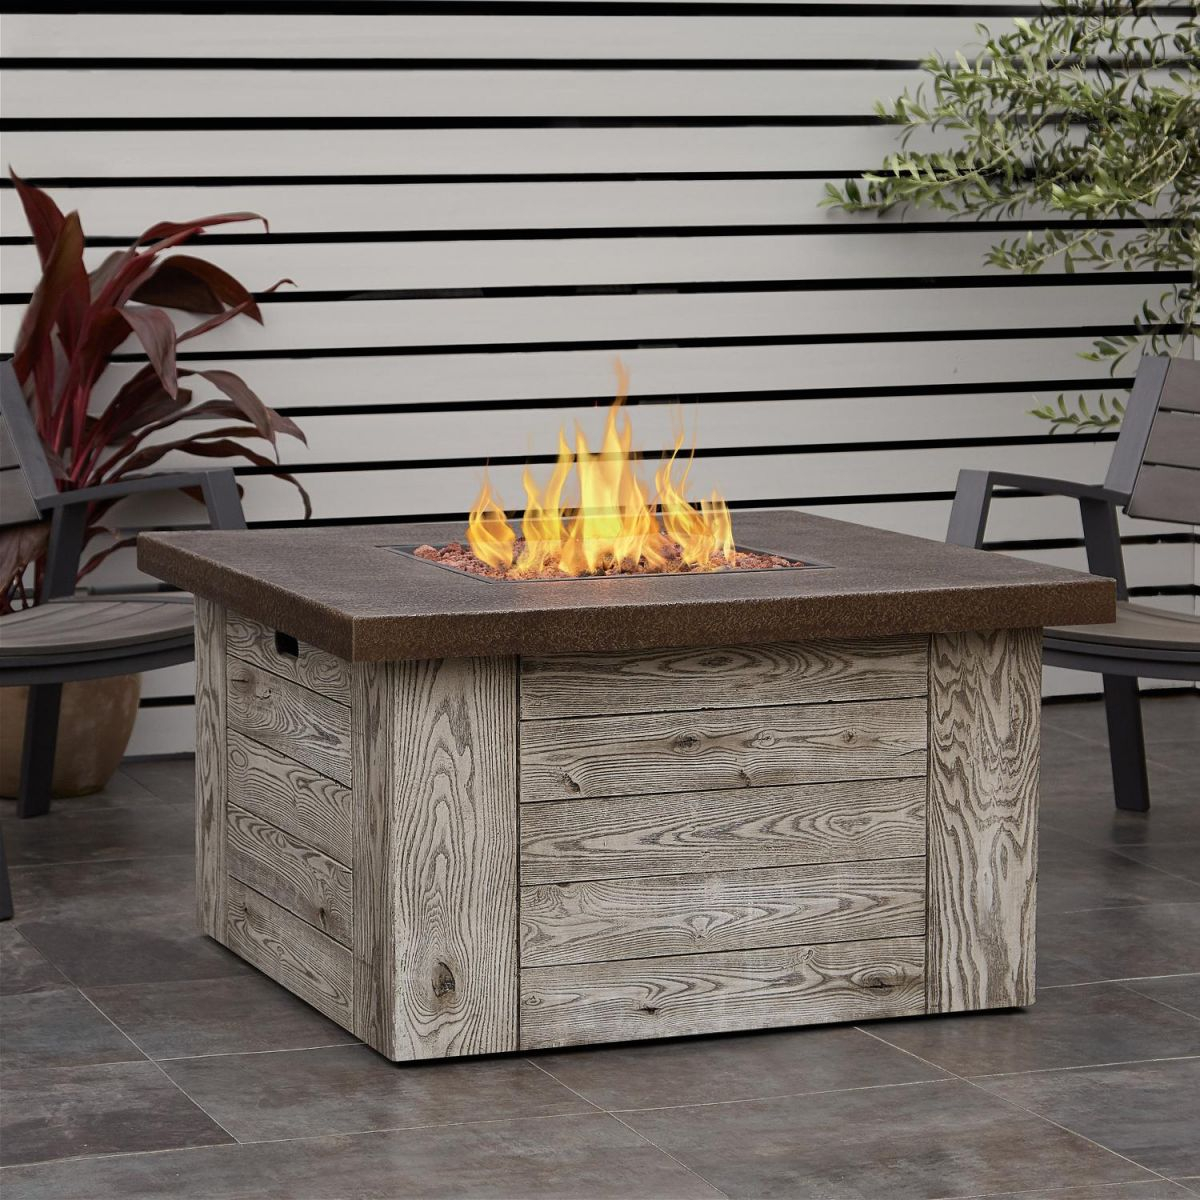 Real Flame Forest Ridge 42-Inch Square Propane Fire Pit Table with Lovely Outdoor Propane Fire Pit